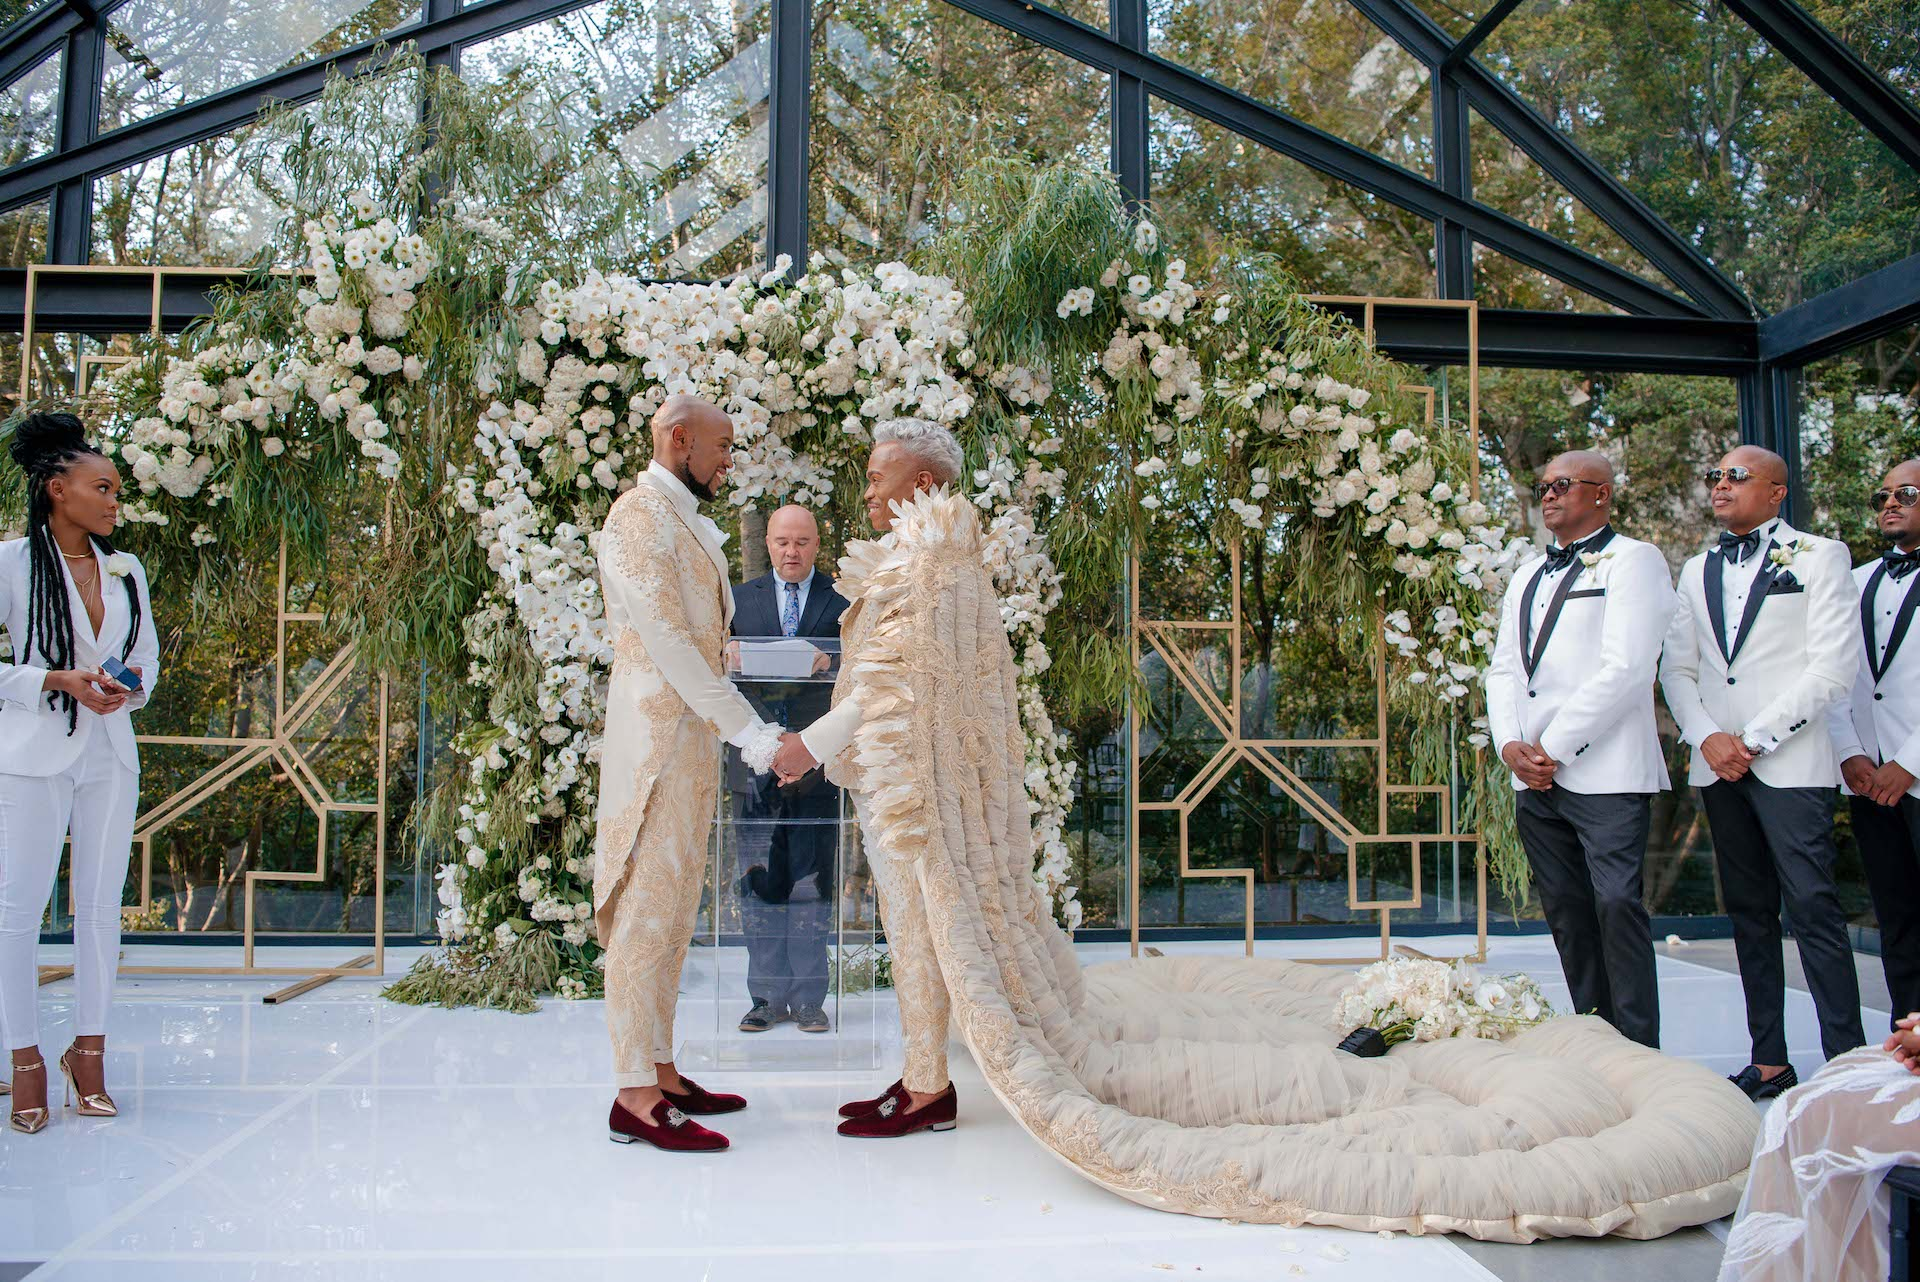 A Wedding Cake Hanging From The Ceiling? What Else Would You Expect From Somizi And Mohale?